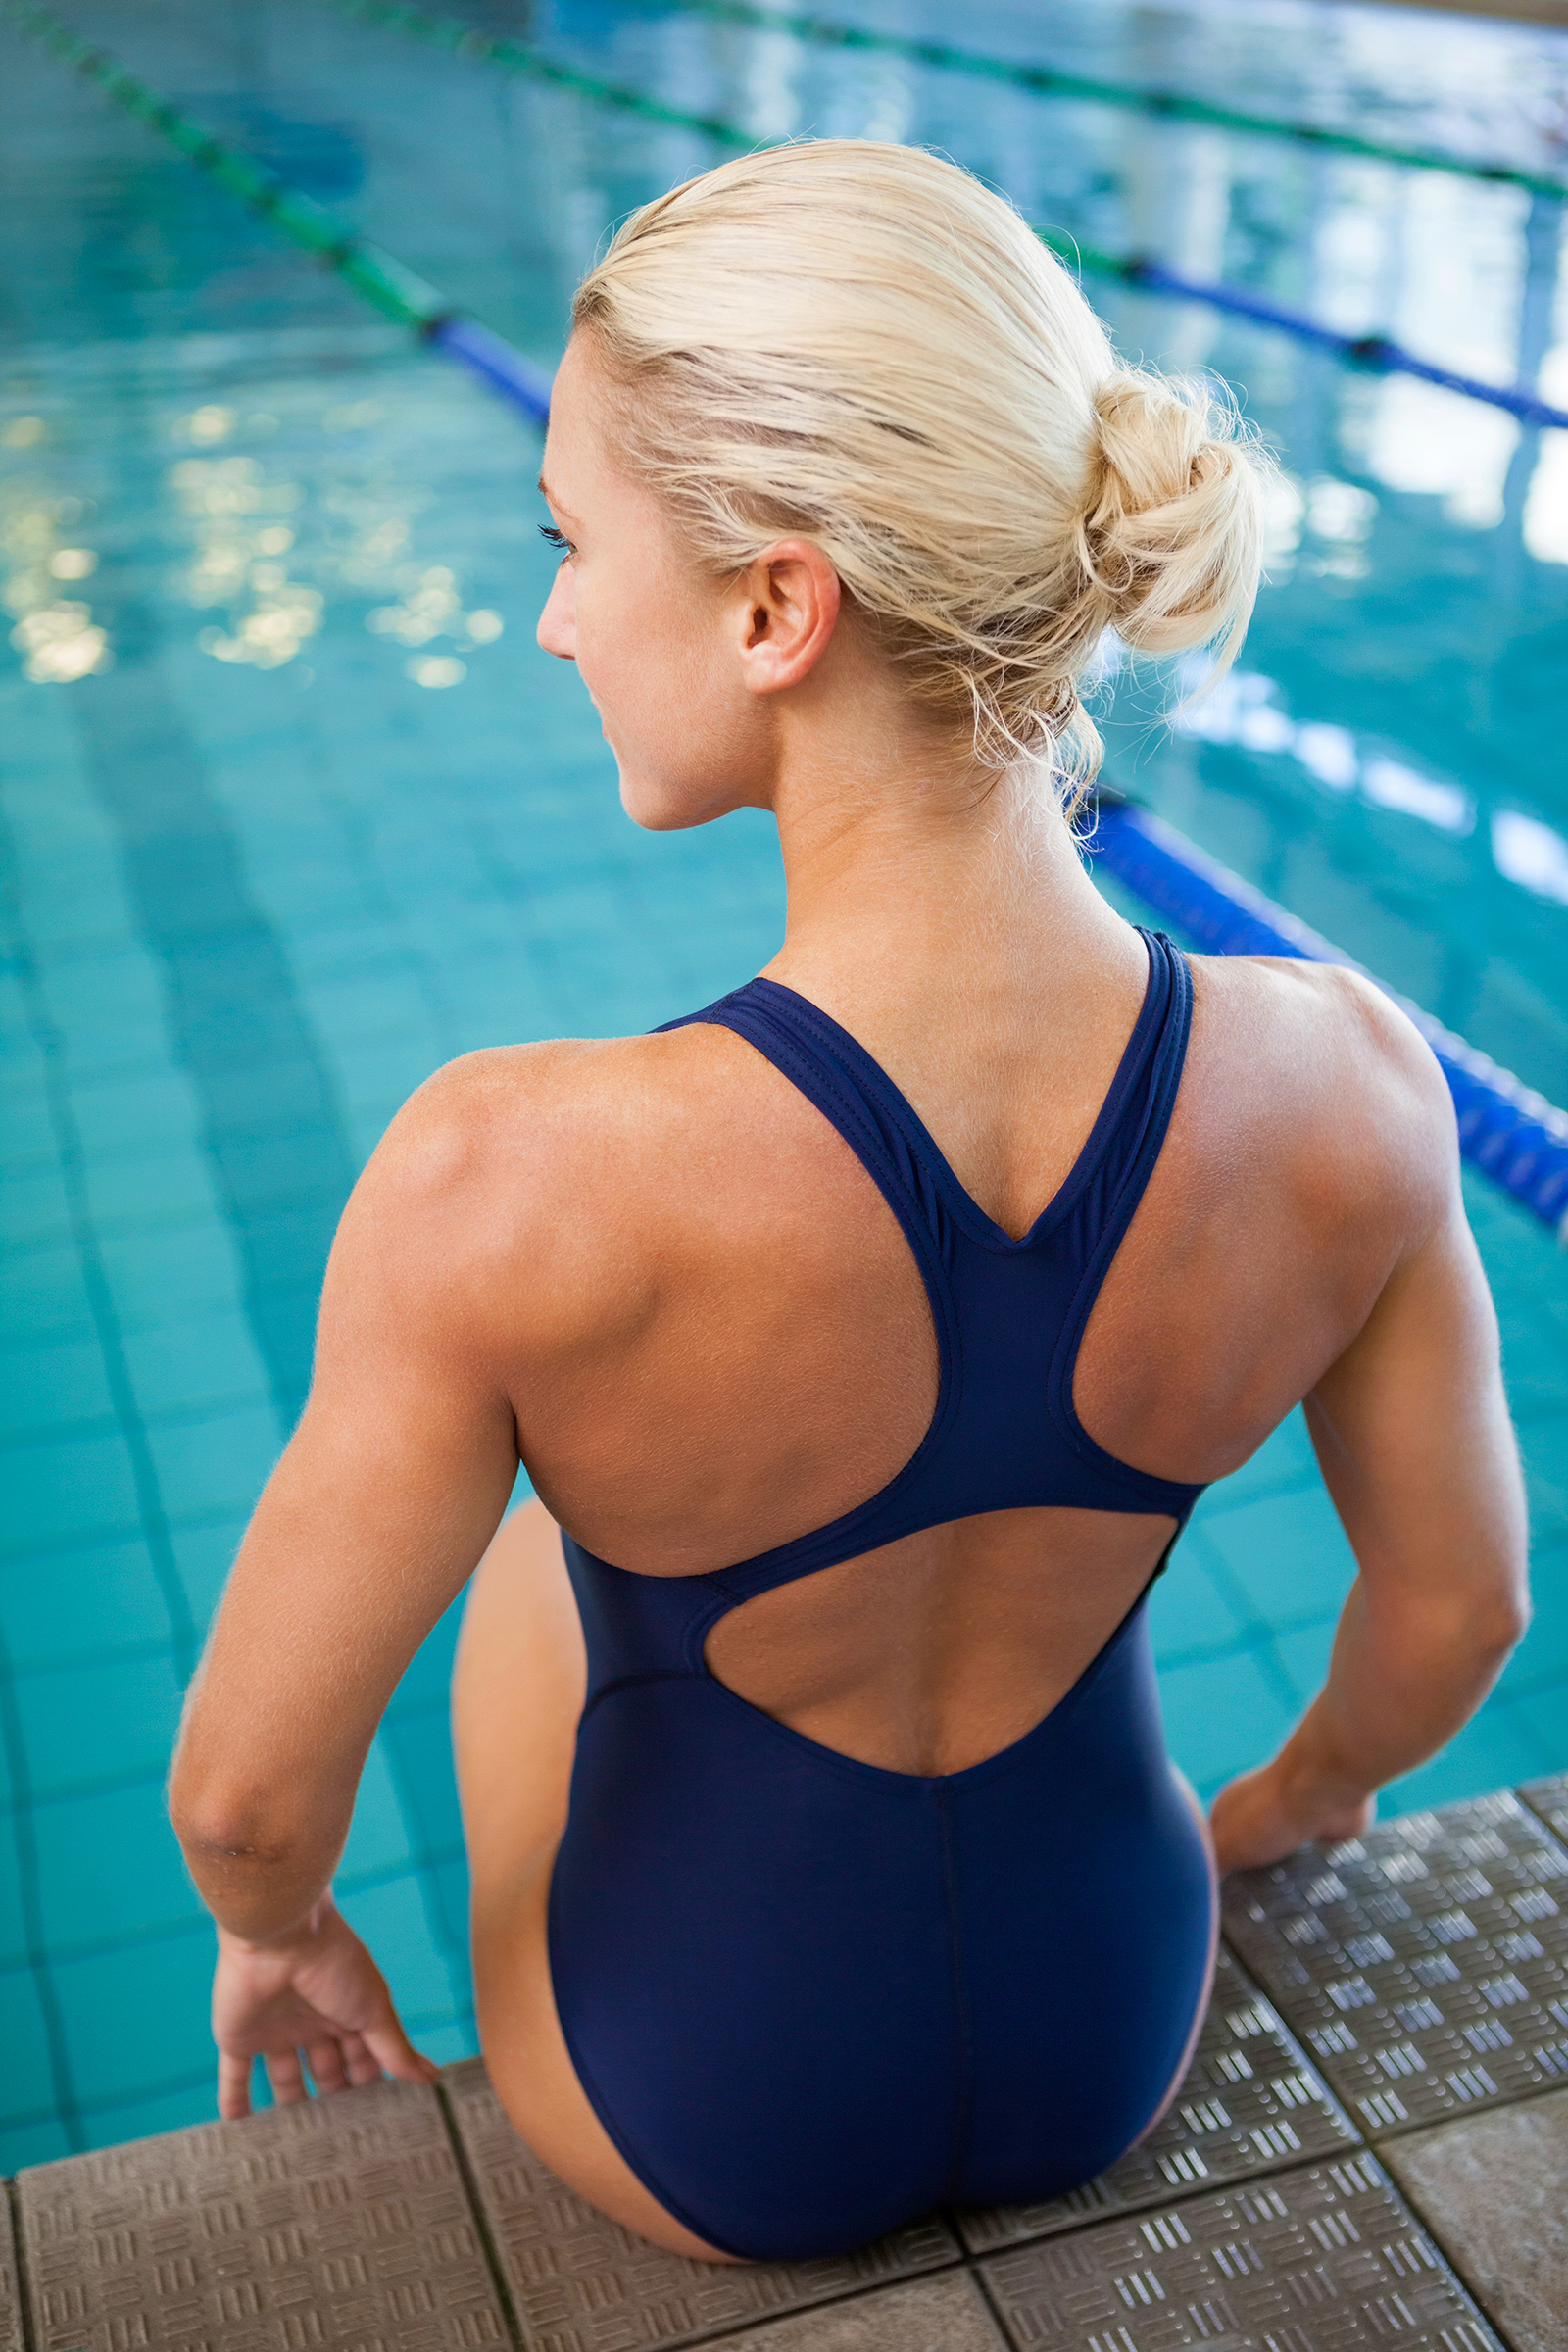 Focus on the shoulders of a well-toned female swimmer